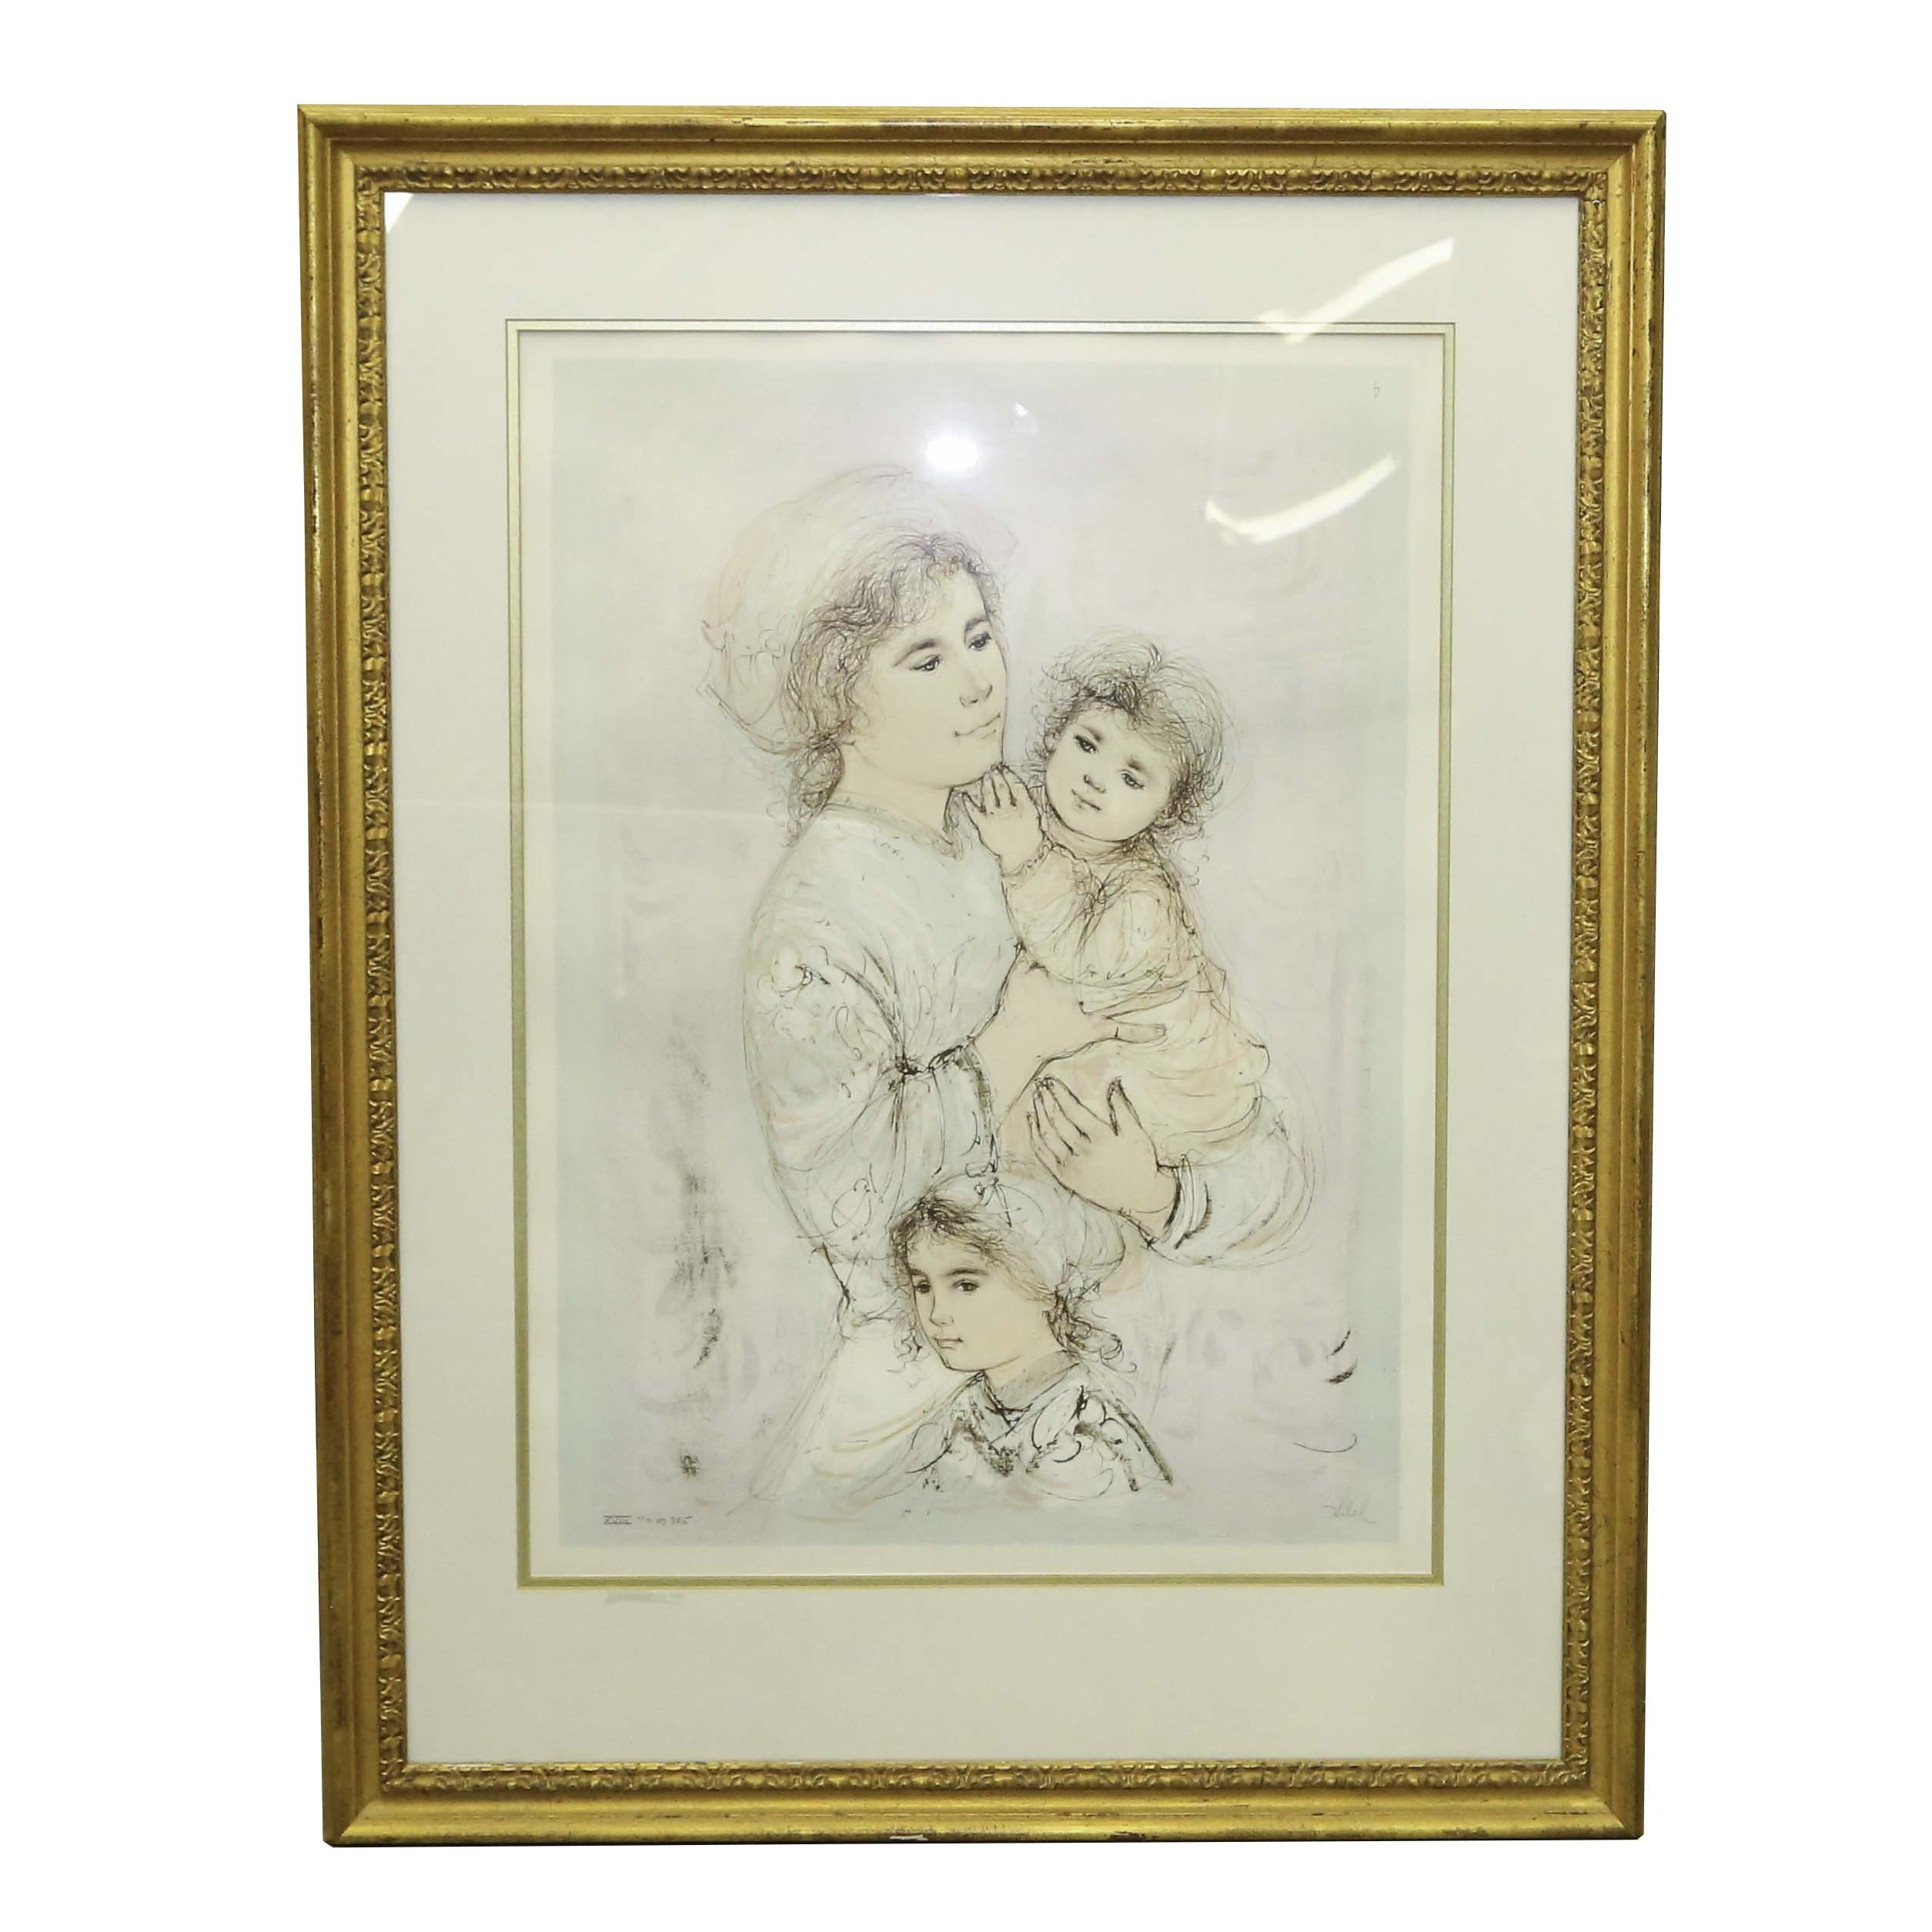 Edna Hibel Limited Edition Lithograph